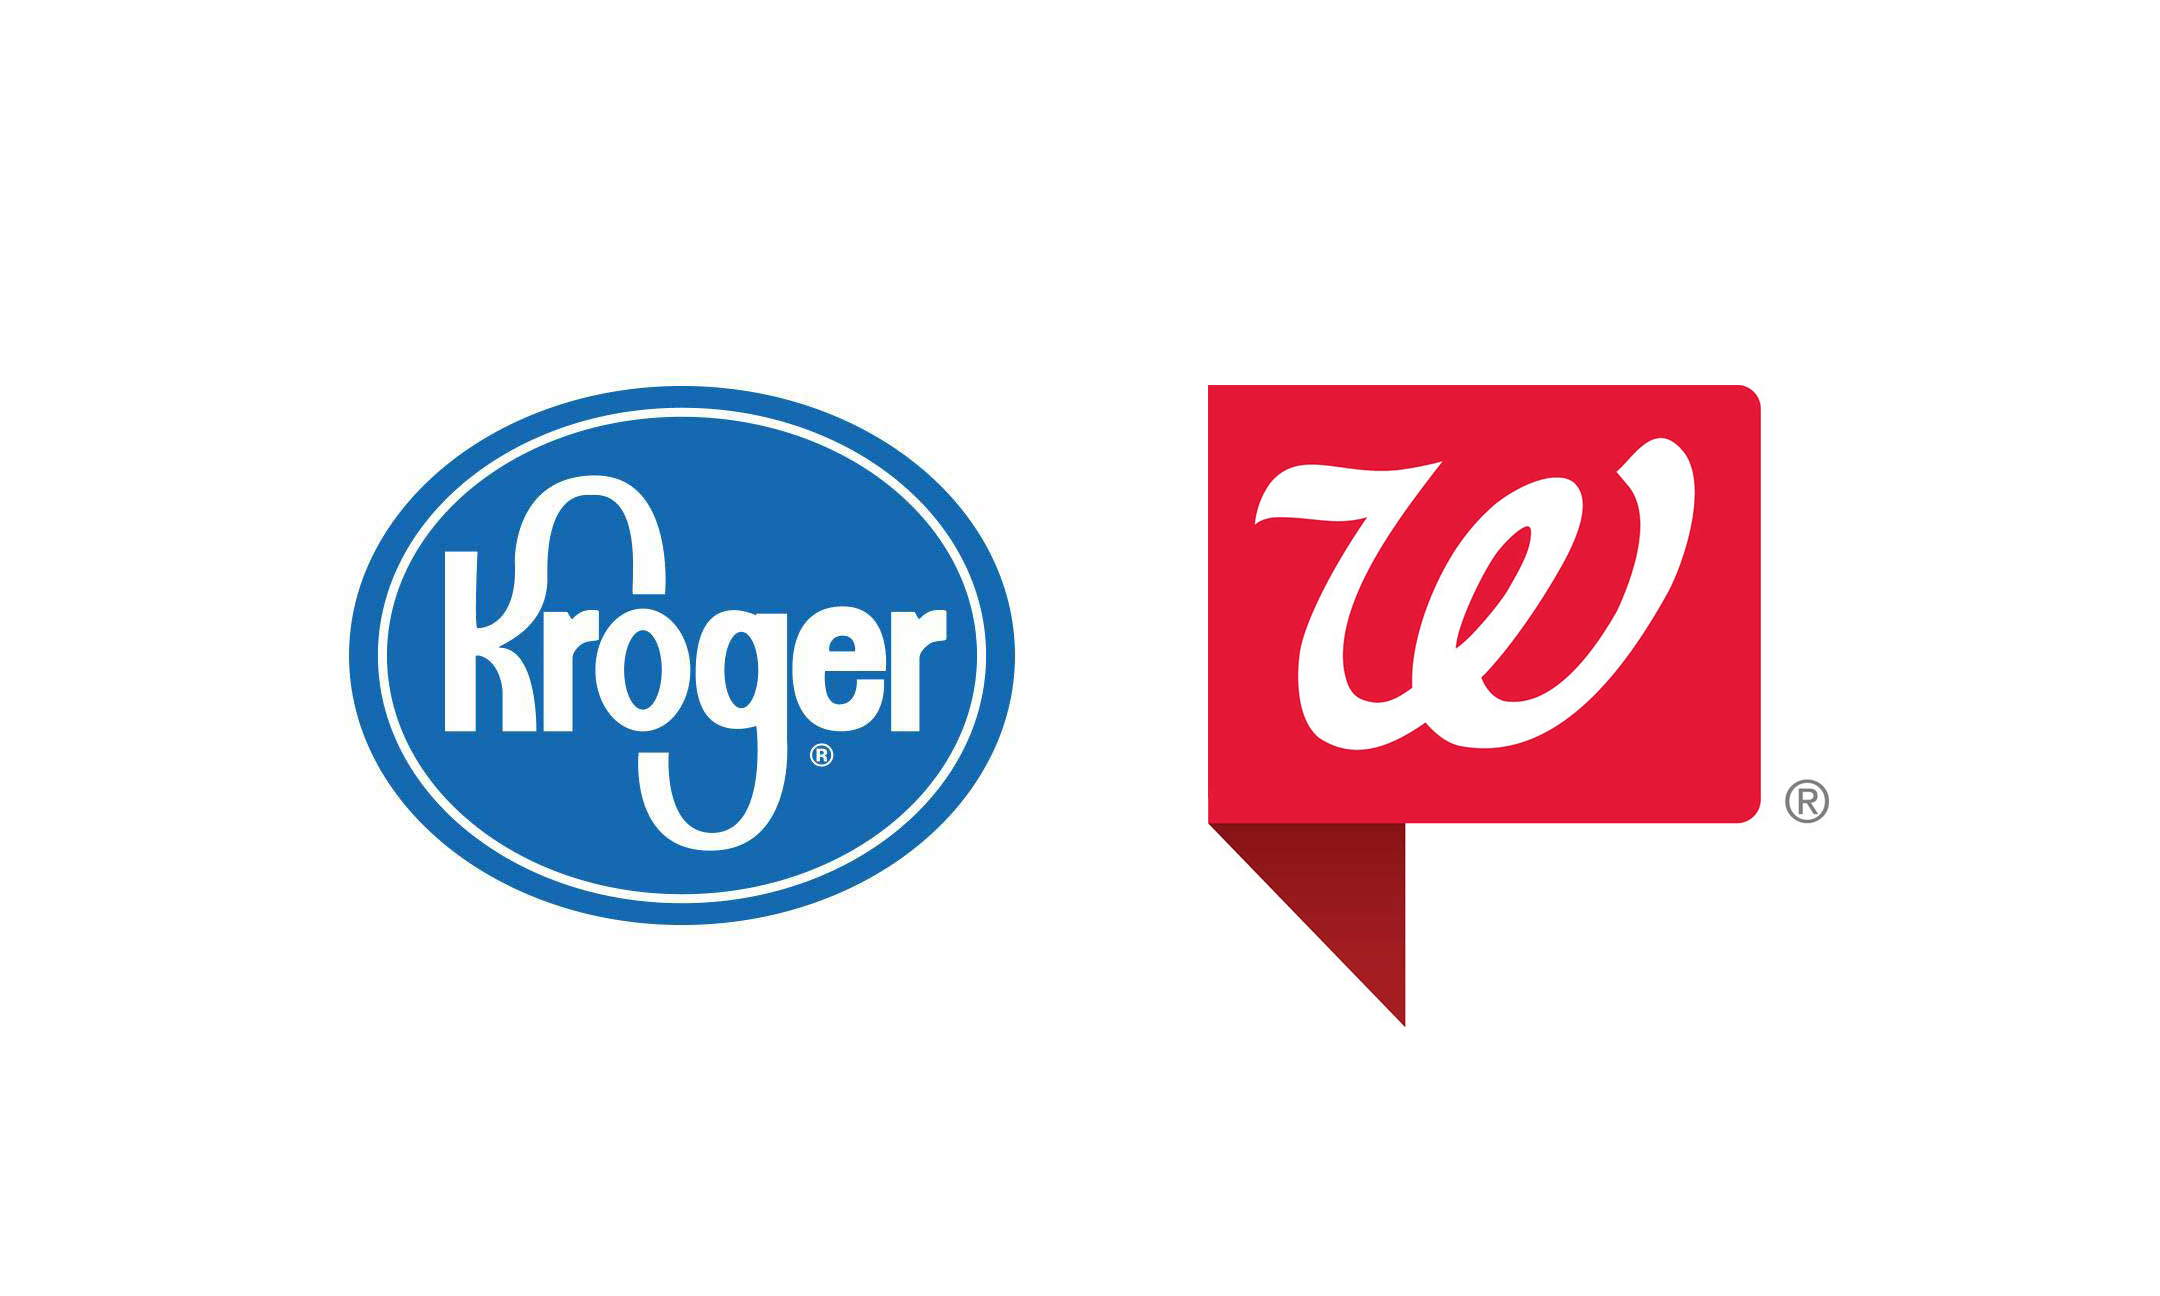 The Kroger and Walgreens logos